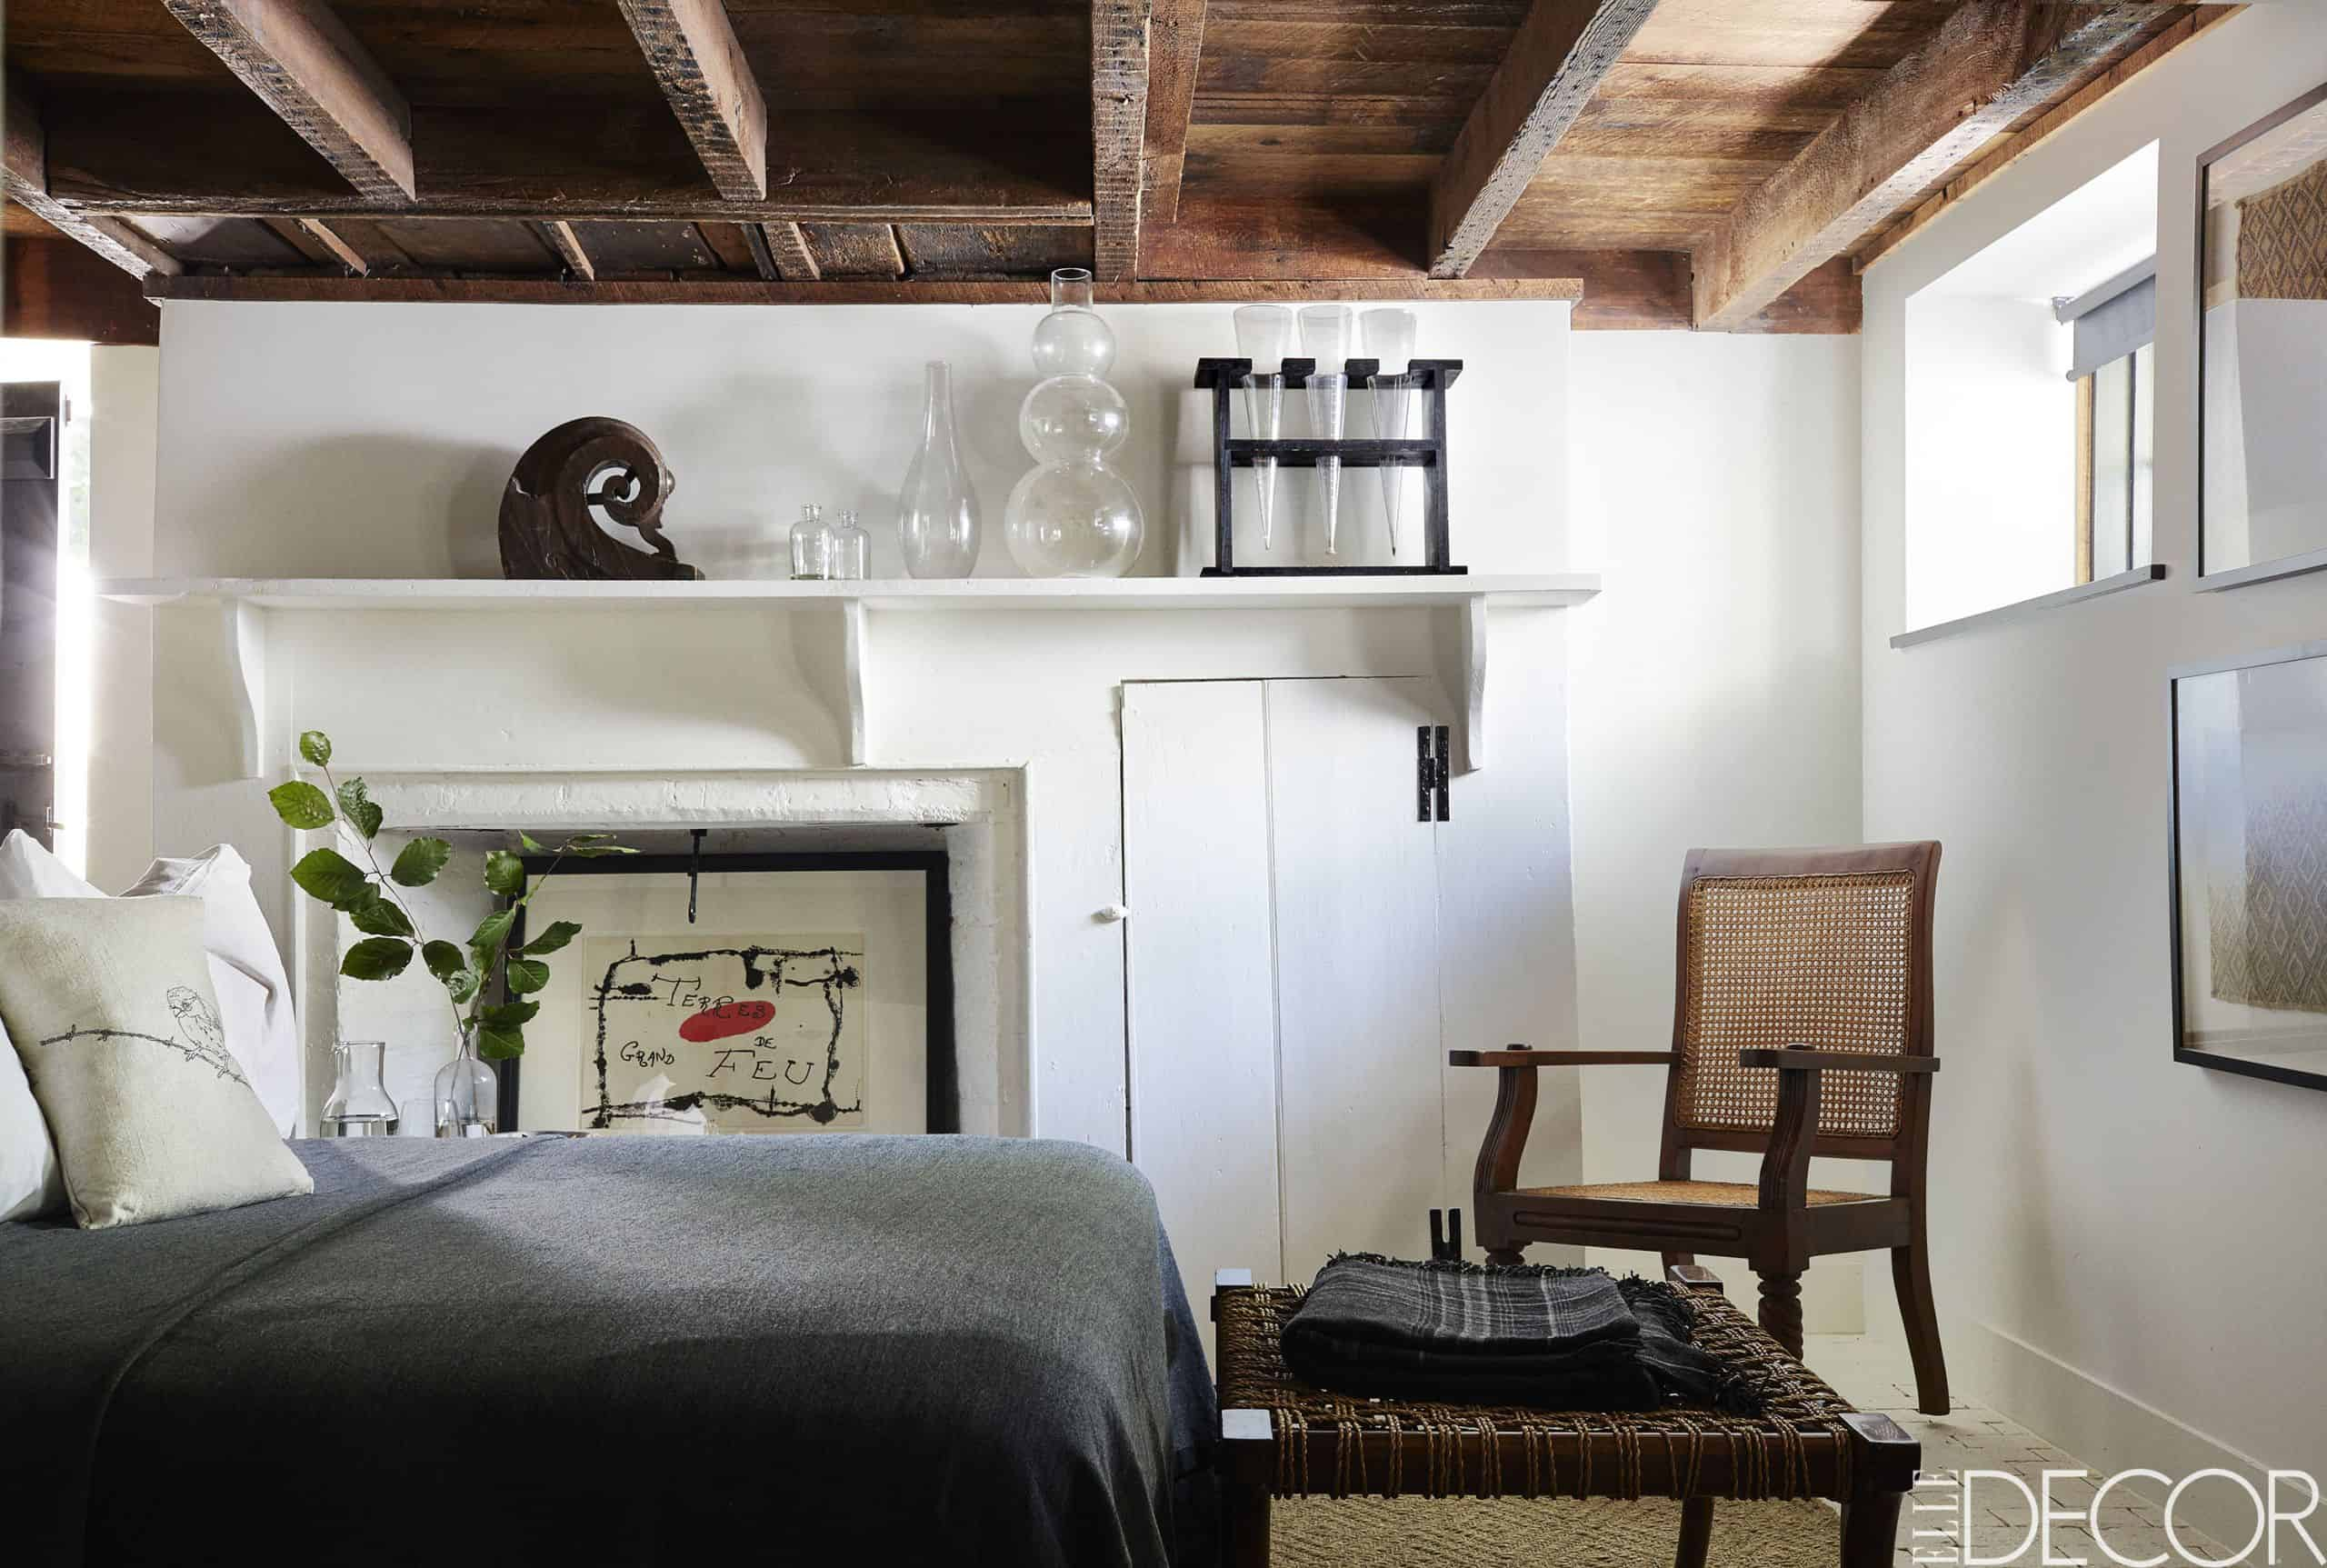 15 DIY Ways To Level Up Your Small Bedroom